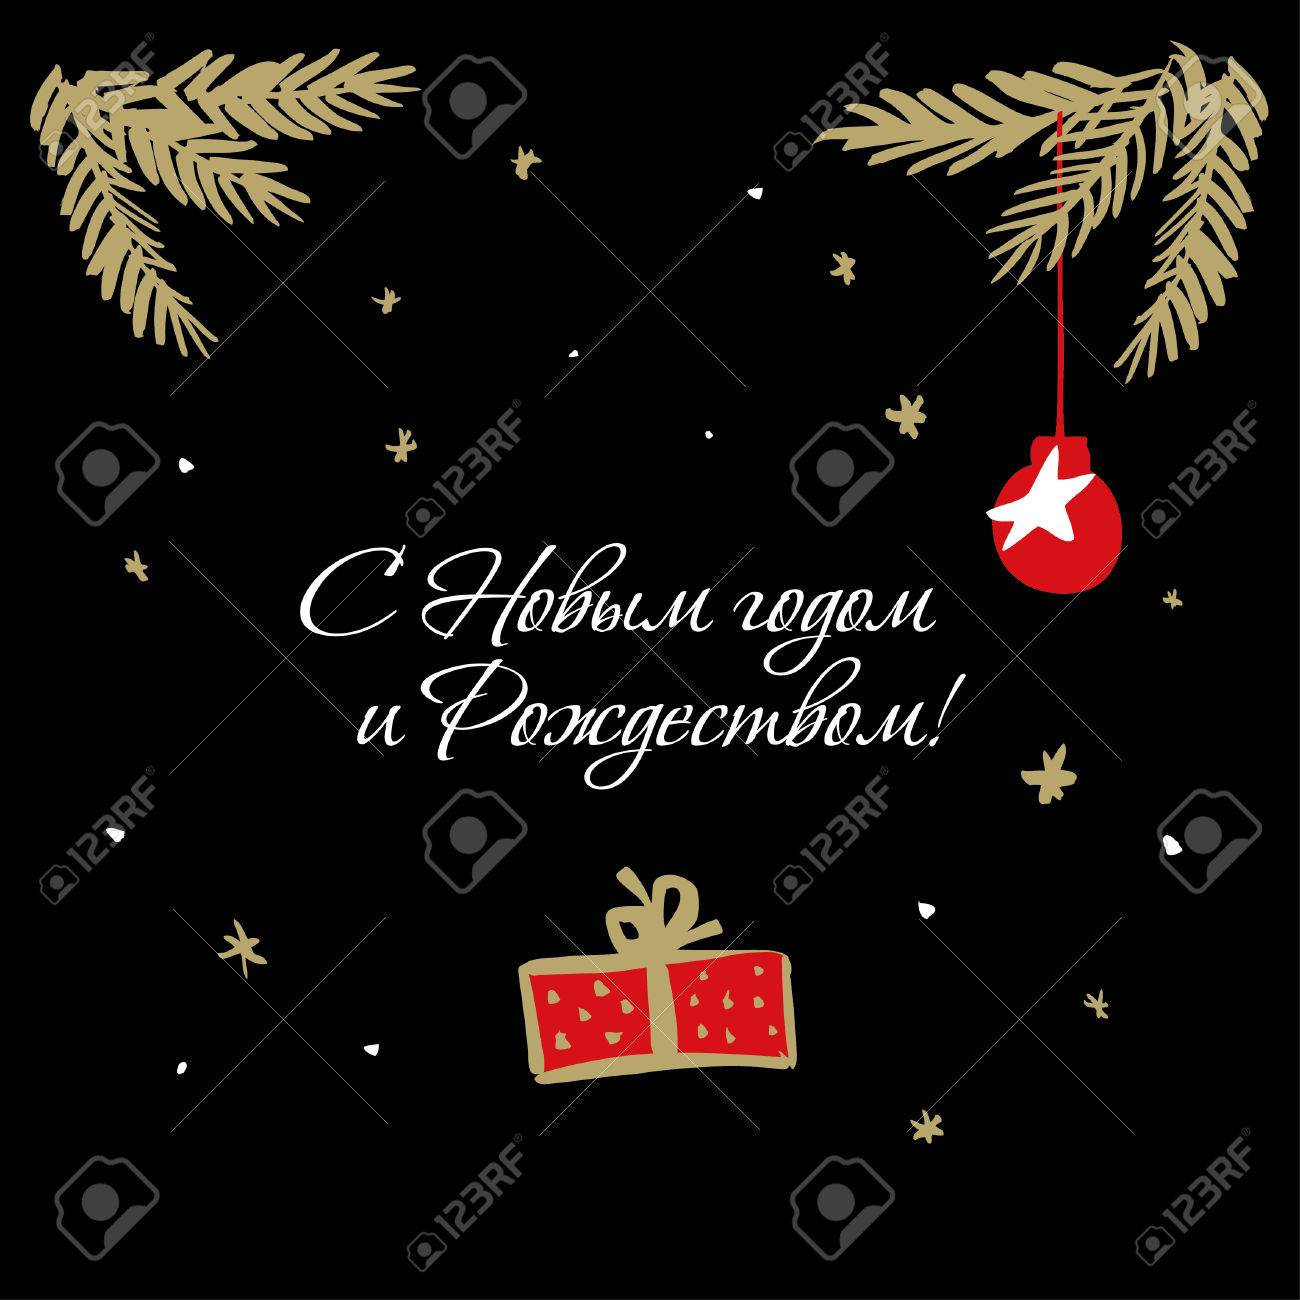 Merry Christmas In Russian.Happy New Year And Merry Christmas In Russian Vector Greeting